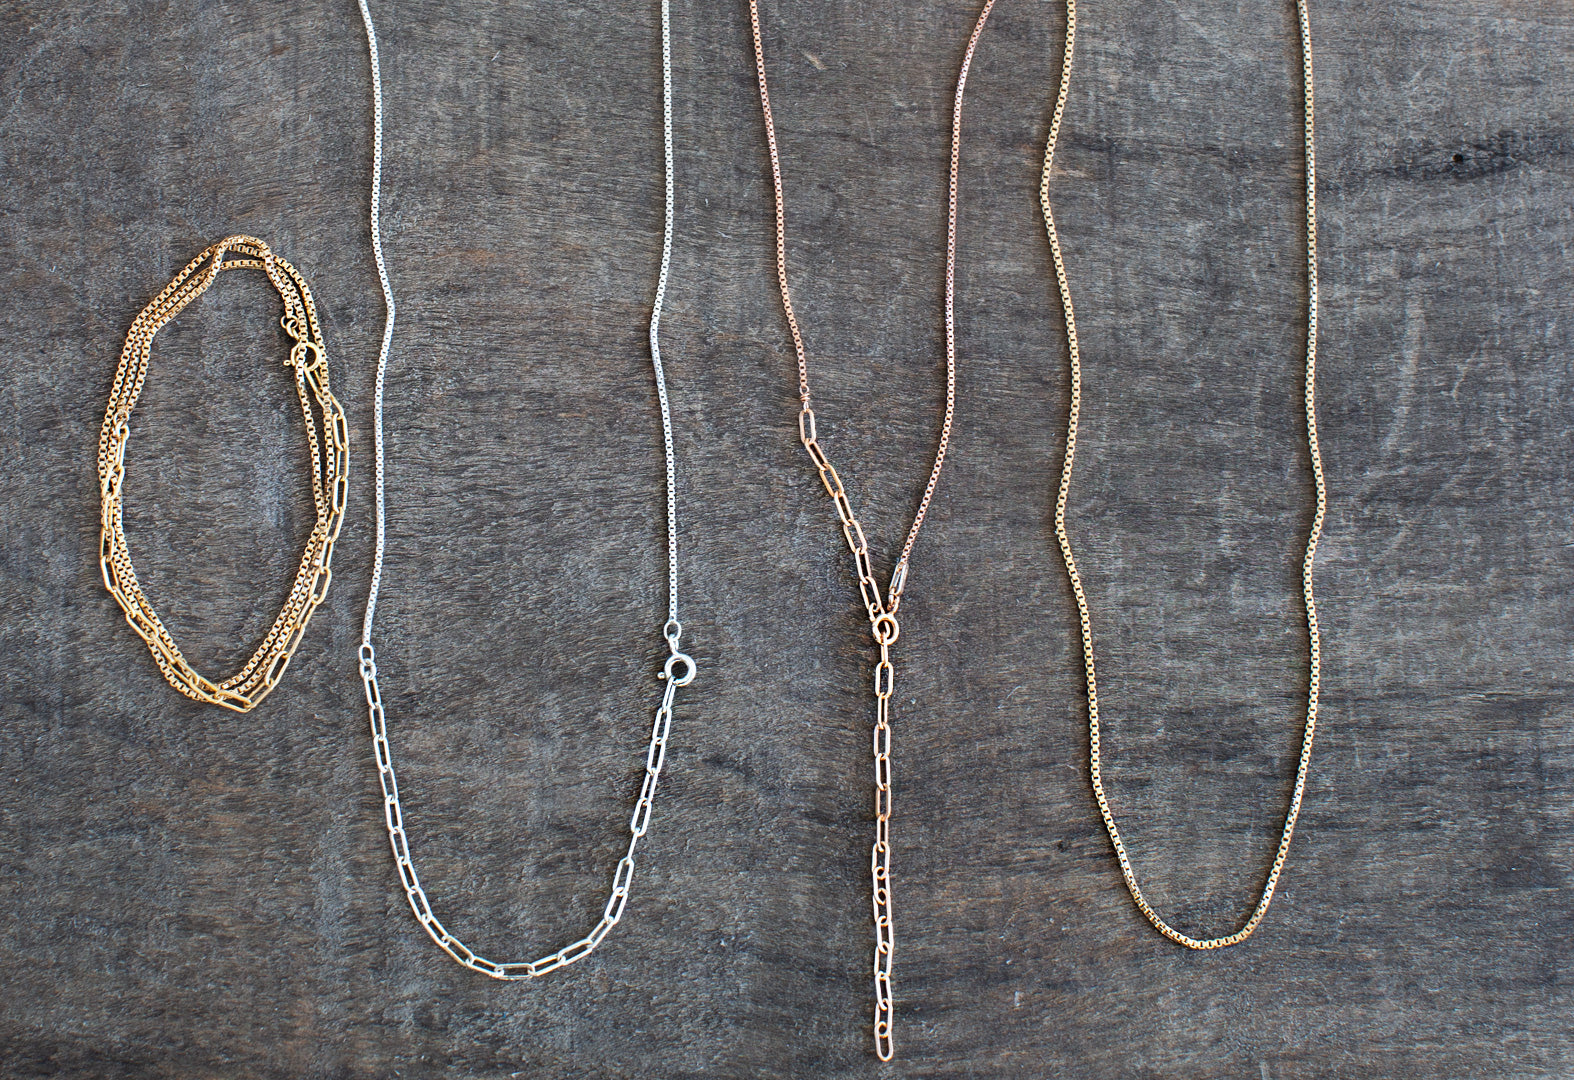 4-in-1 Cable Chain